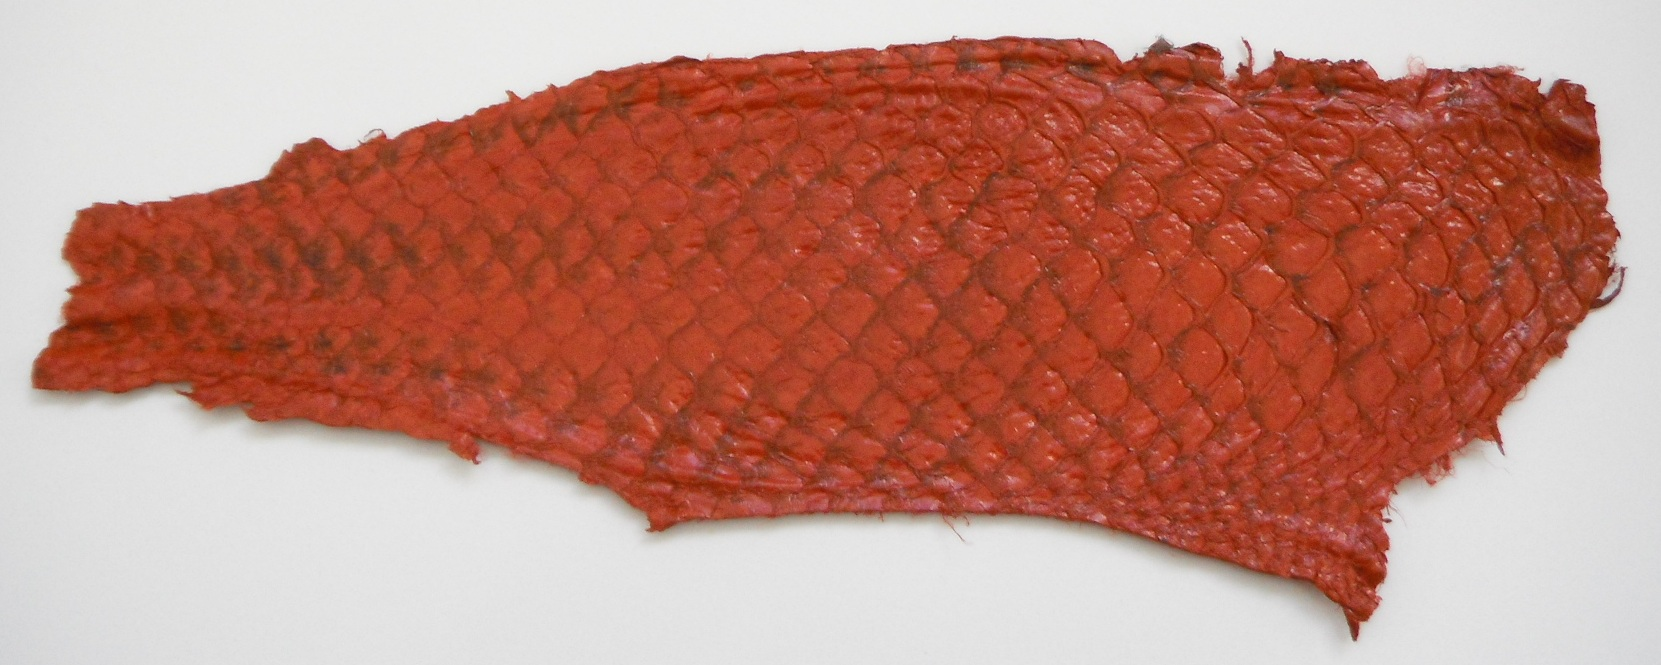 Eco friendly handmade soft suede Red Tilapia Fish Skin Leather.